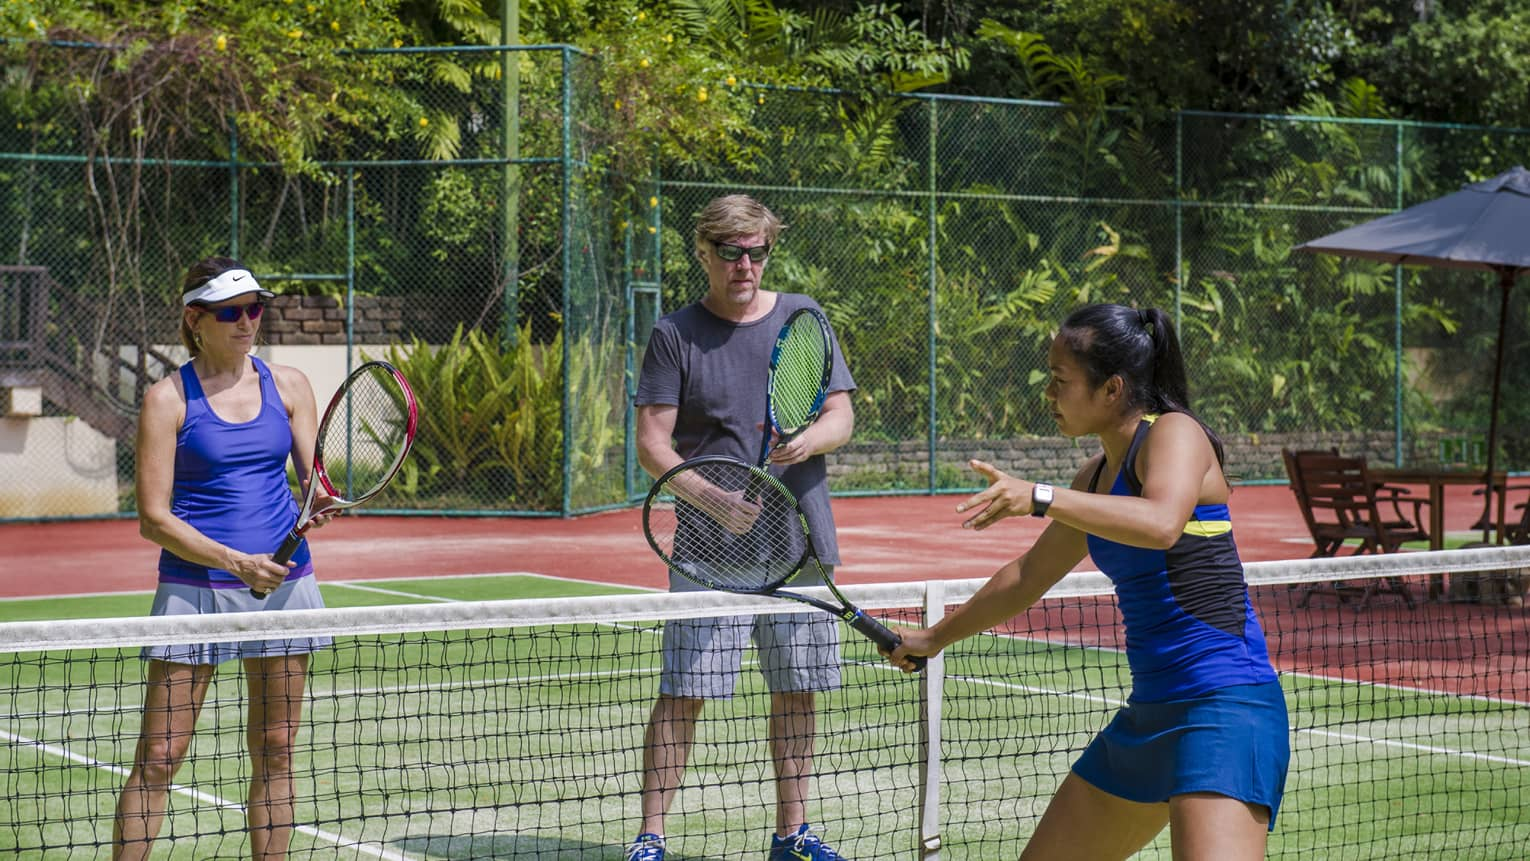 Woman demonstrates tennis serve at net while tennis pro Nichapa Rungtein, woman watch